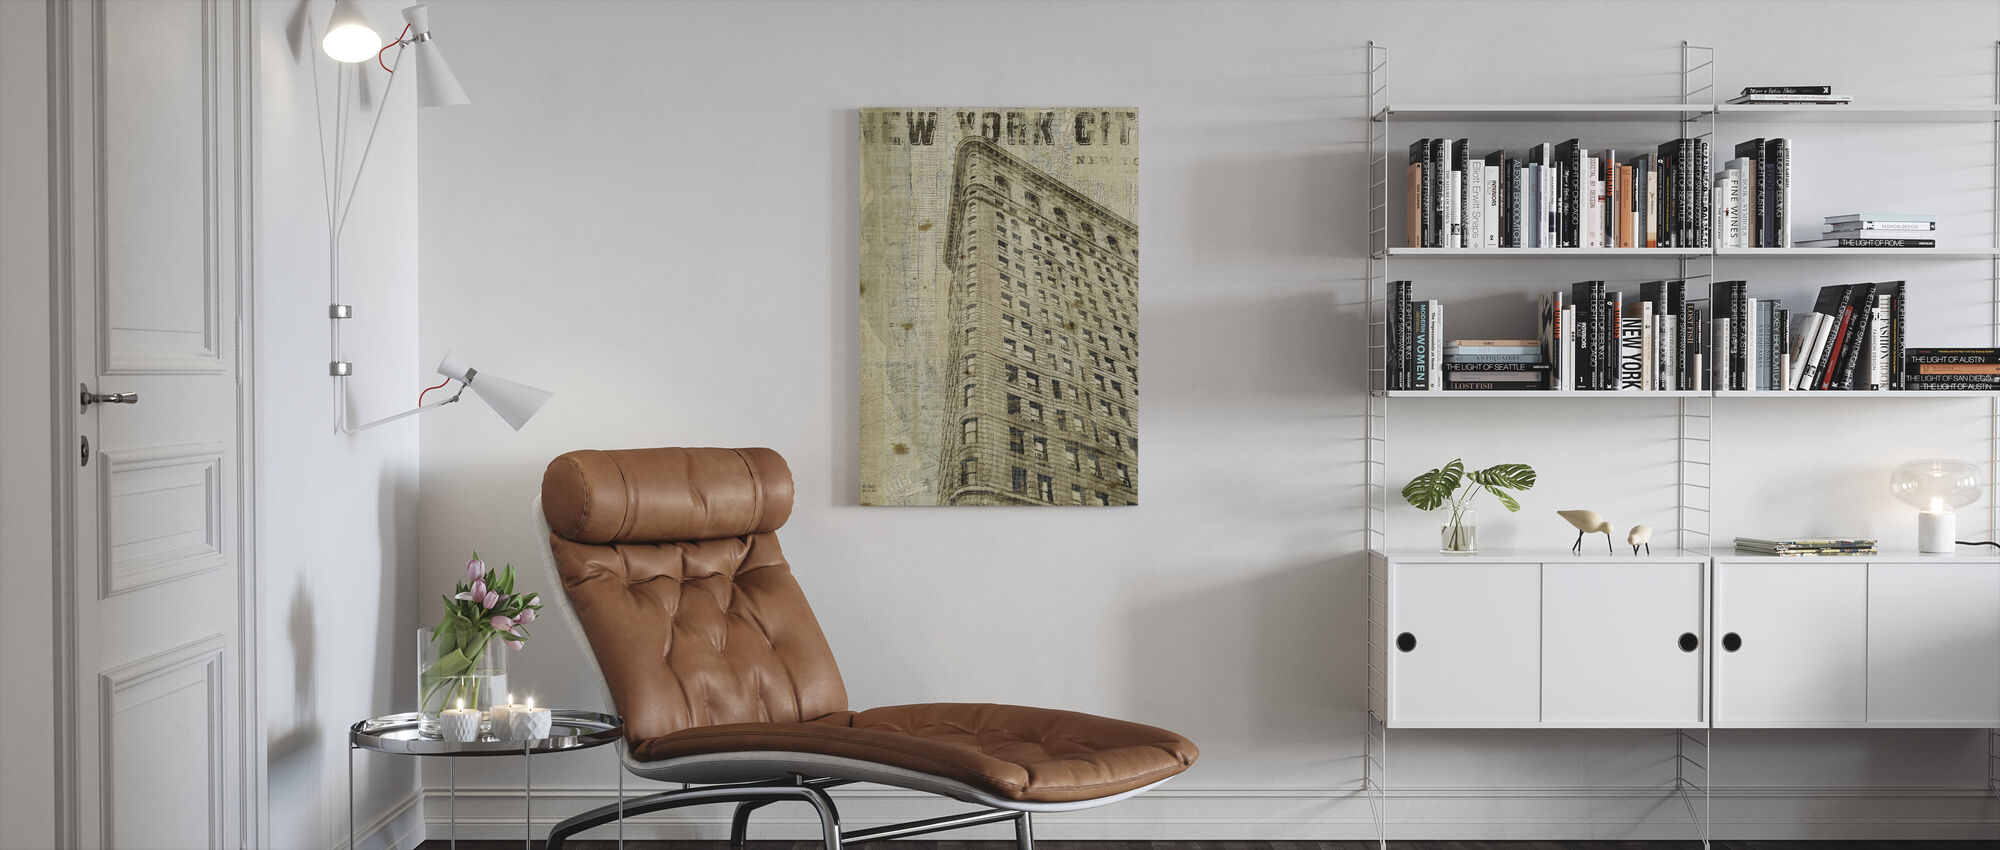 Vintage New York Flat Iron - Canvas print - Living Room